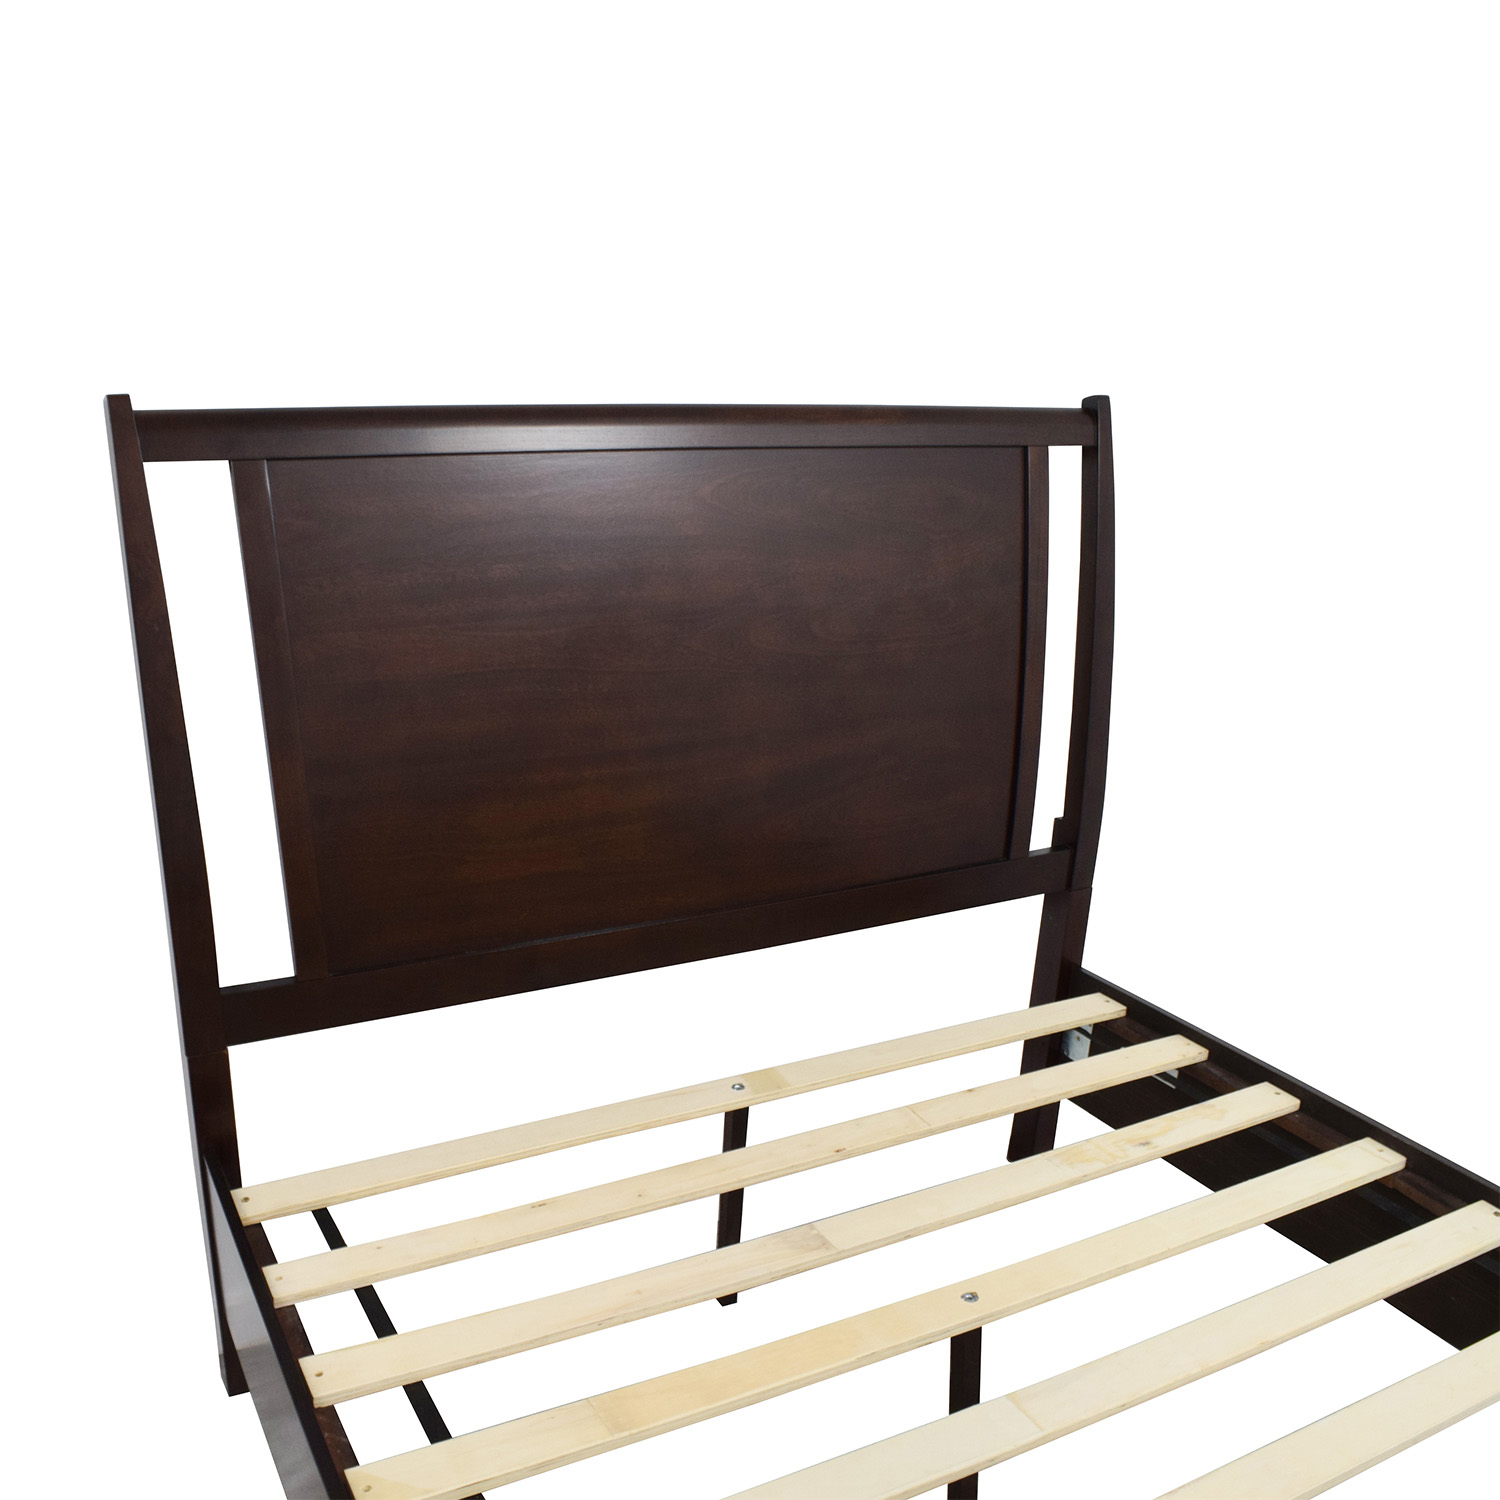 buy Bobs Furniture Wooden Queen Size Storage Bed Bobs Furniture Bed Frames